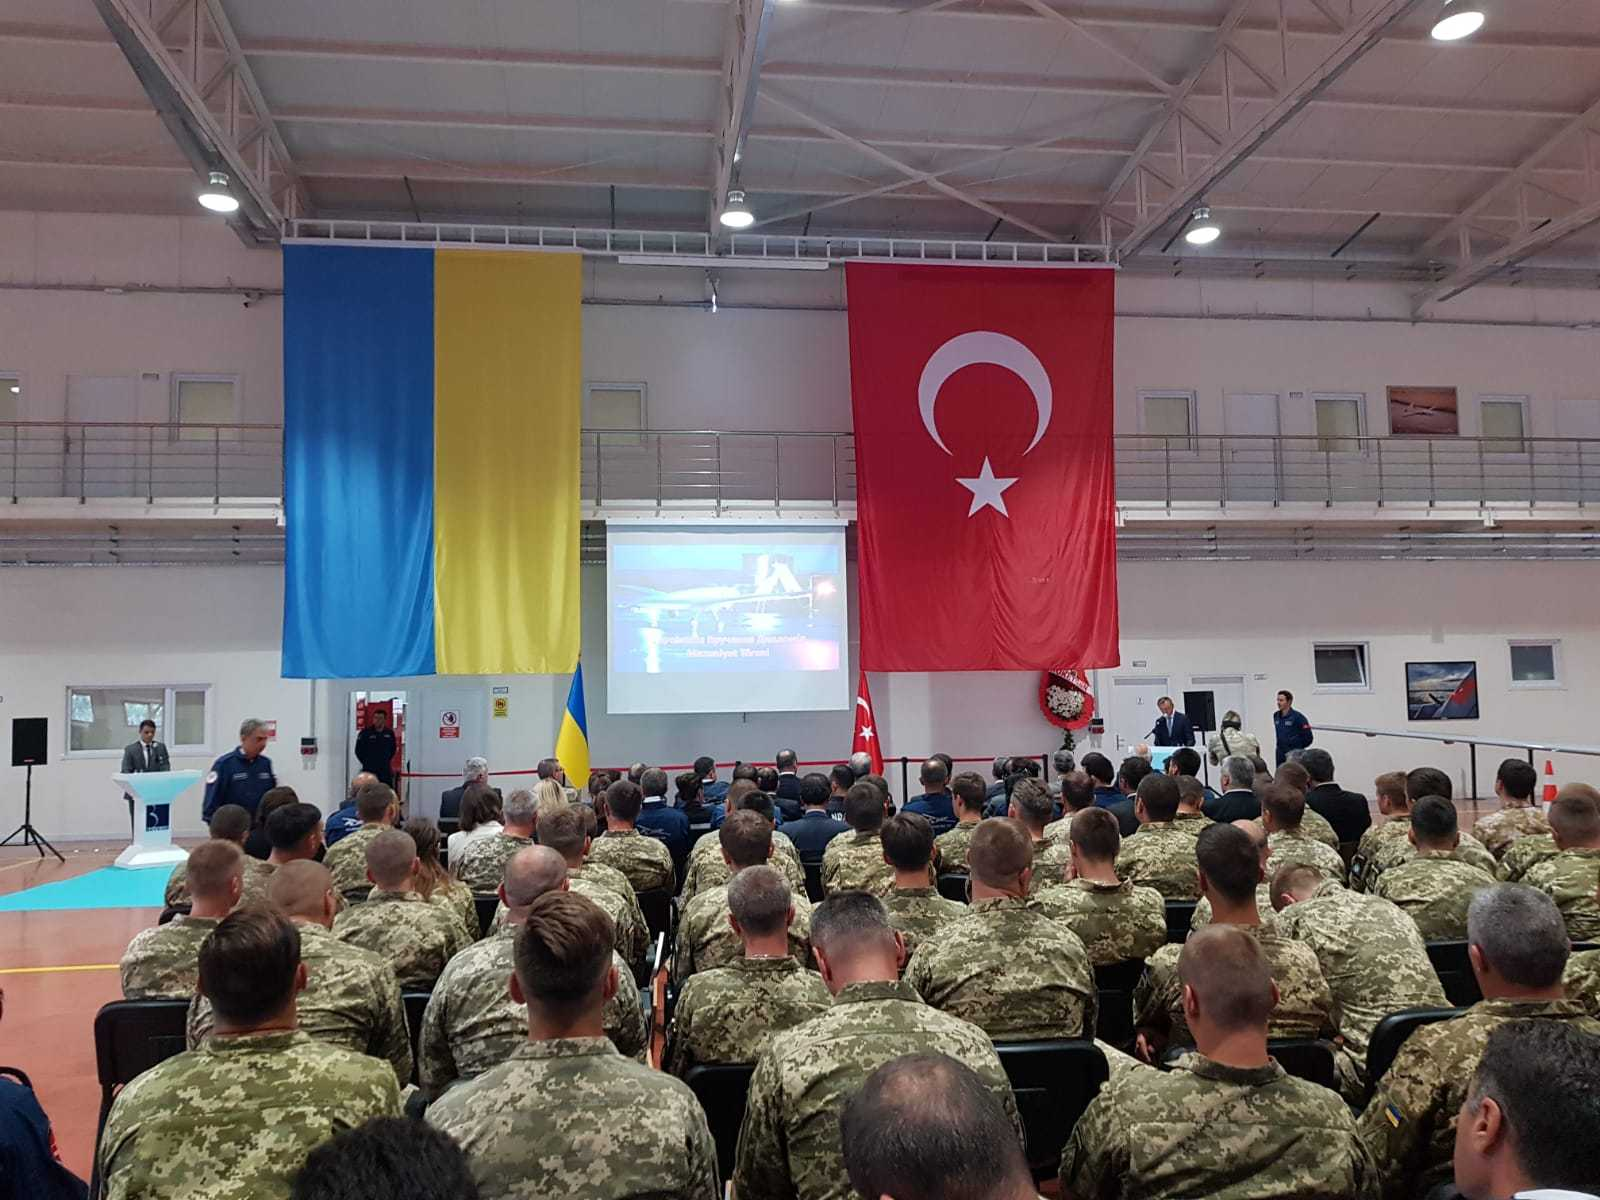 150 Turkish military arrived in the conflict zone in Donbass